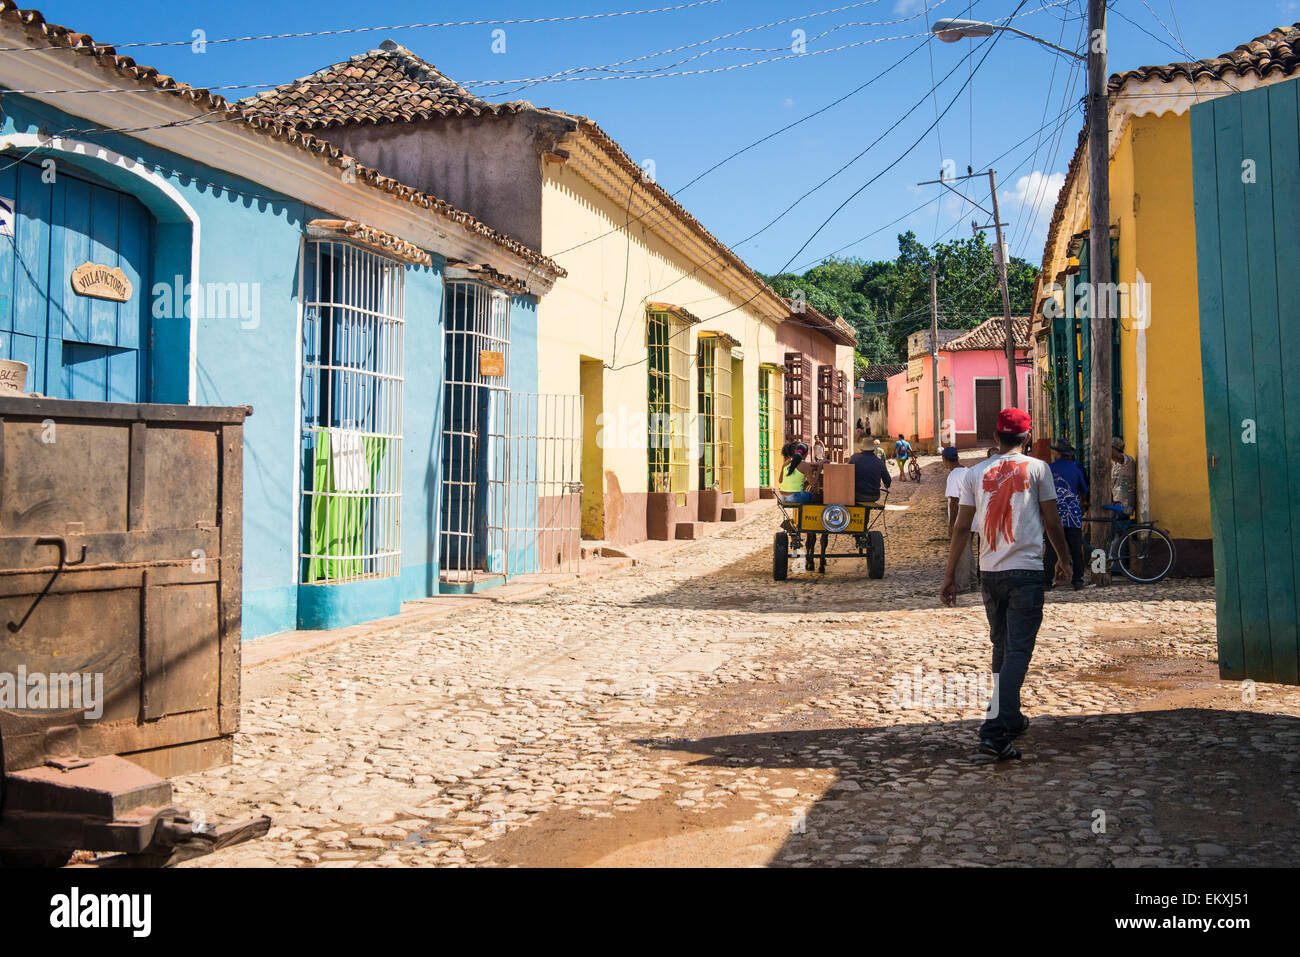 Most Expensive Homes In The World Cuba Trinidad Typical Street Scene Cuban Houses Homes With